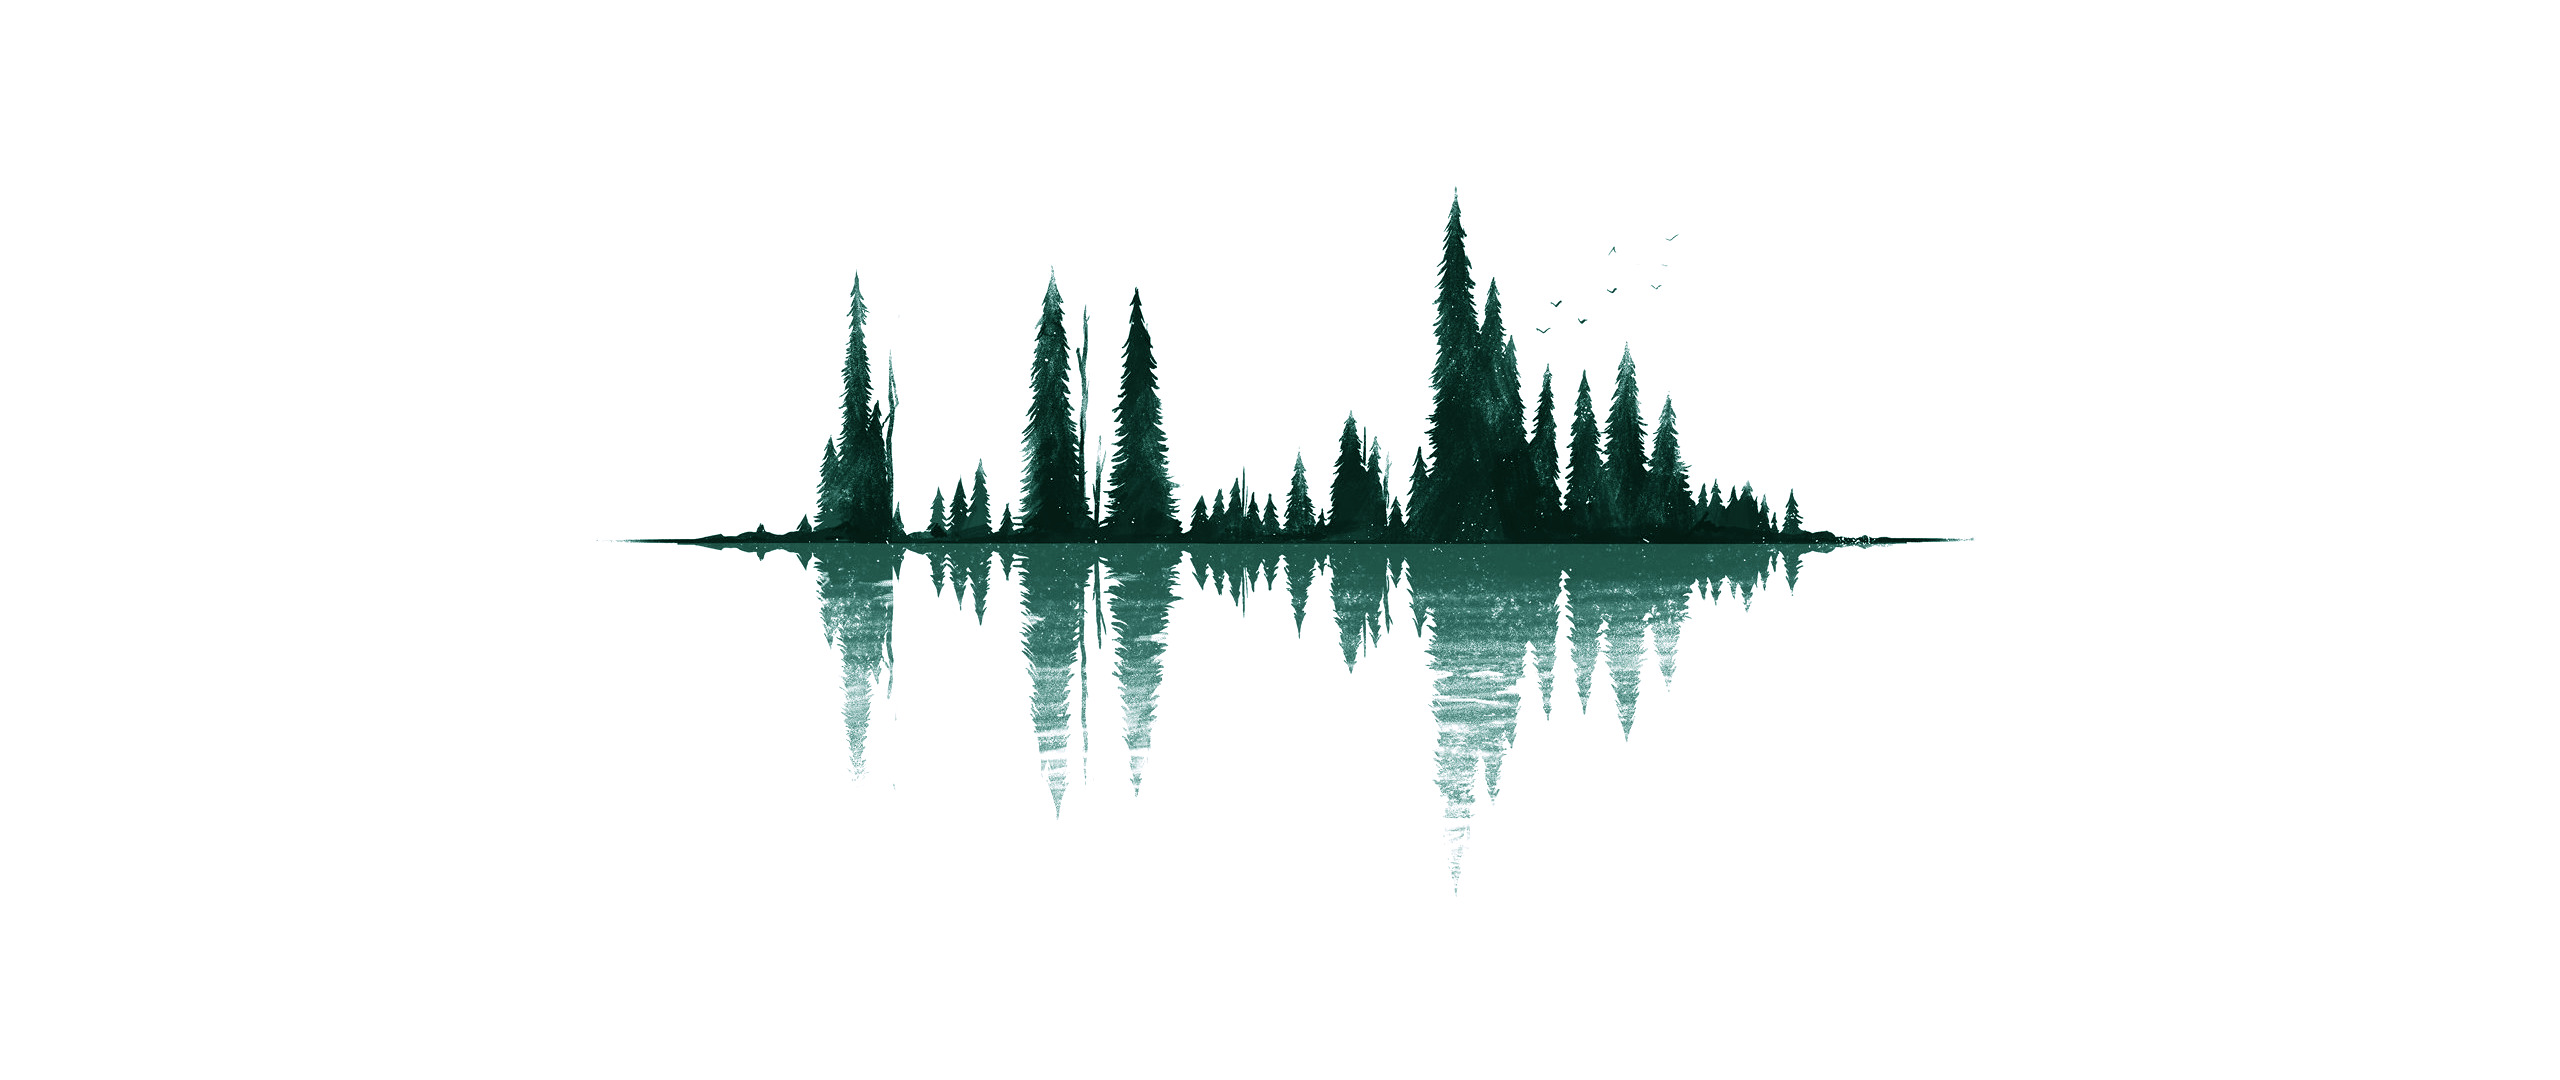 ultra wide, Minimalism, Artwork, Reflection, Trees, Simple ...